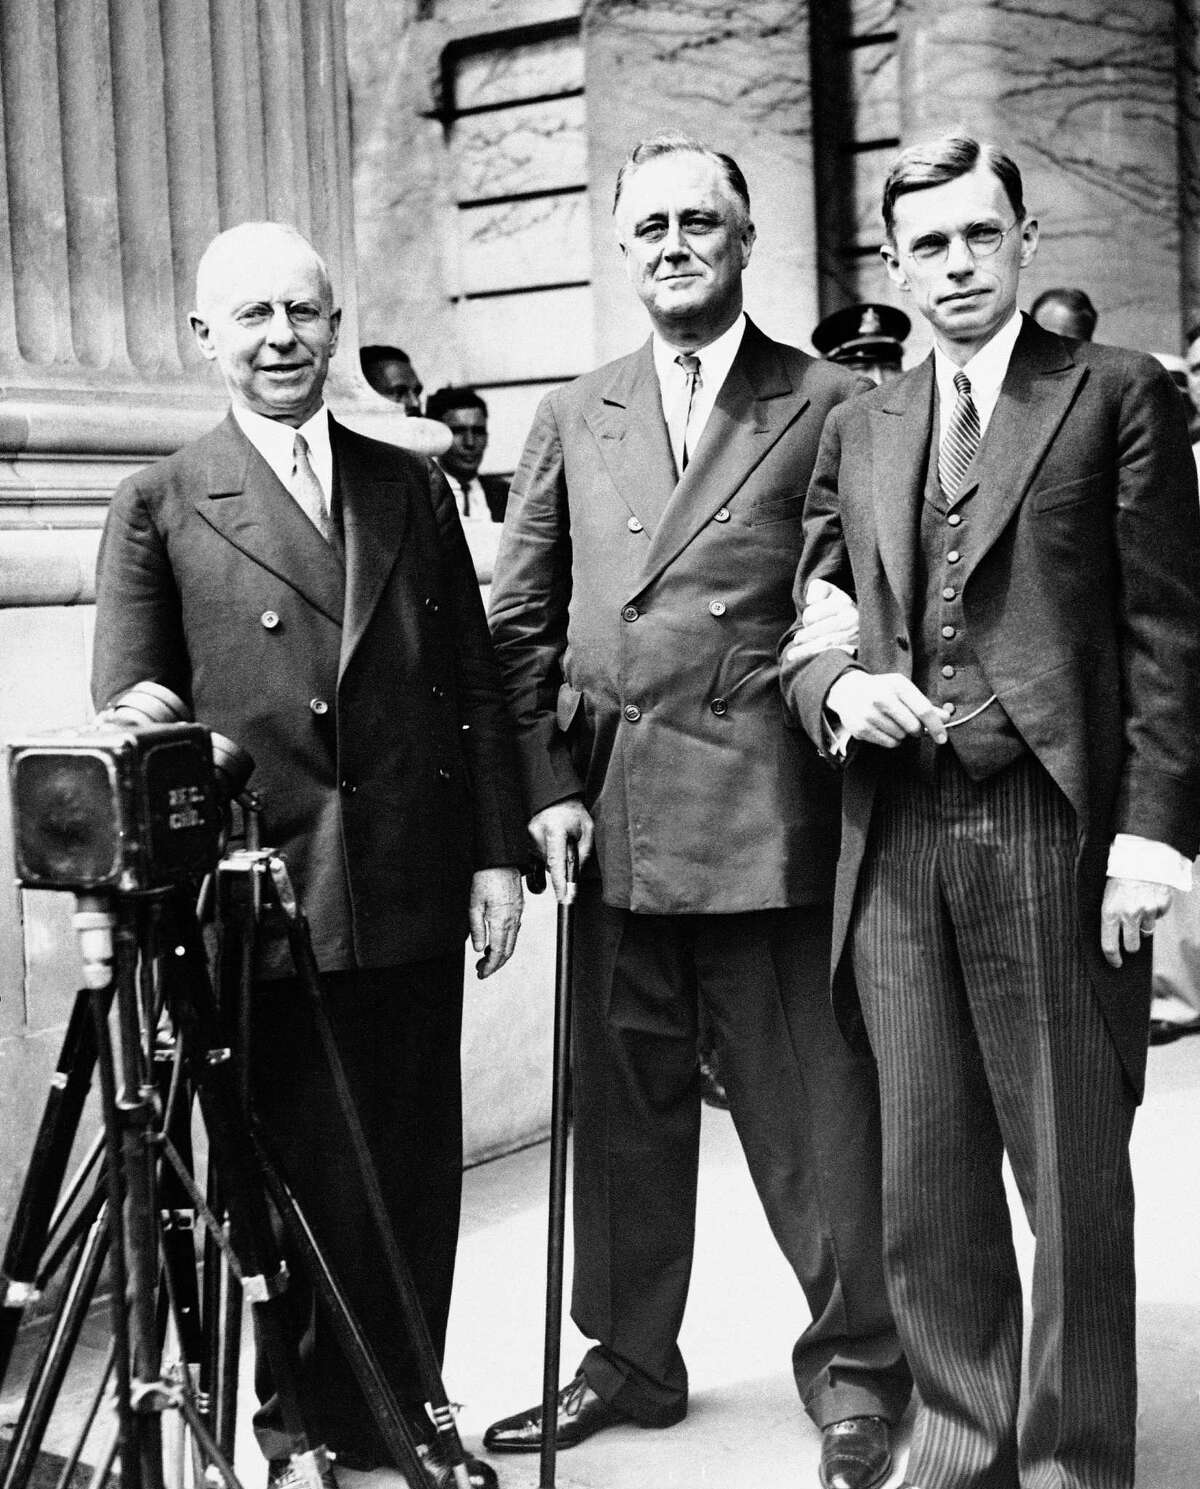 President Franklin D. Roosevelt, is shown just after he received the honorary degree of Doctor of Laws from Yale University, New Haven, Conn., June 20, 1934. From left to right: President James Rowland Angell of Yale; Pres. Roosevelt; and President James Bryant Conant of Harvard University, who also received an honorary degree from Yale.